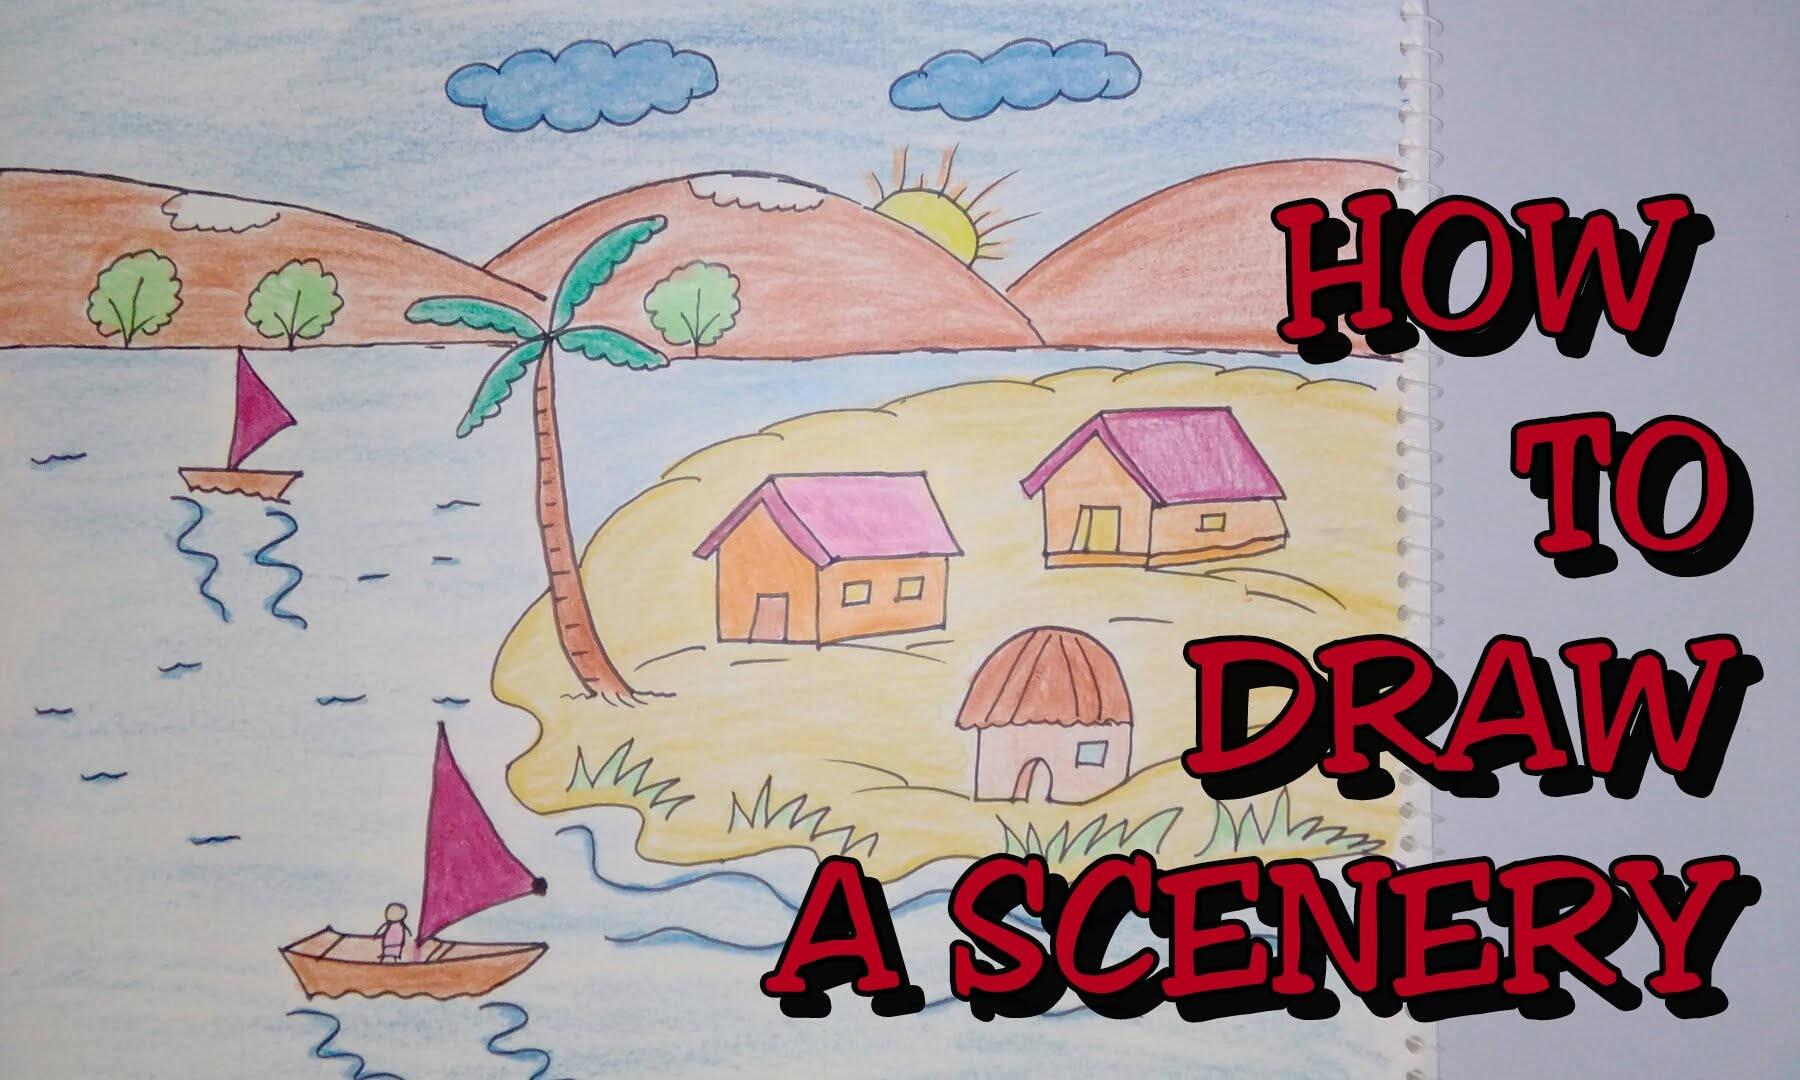 Drawn scenic creative Step how Drawing scenery drawing